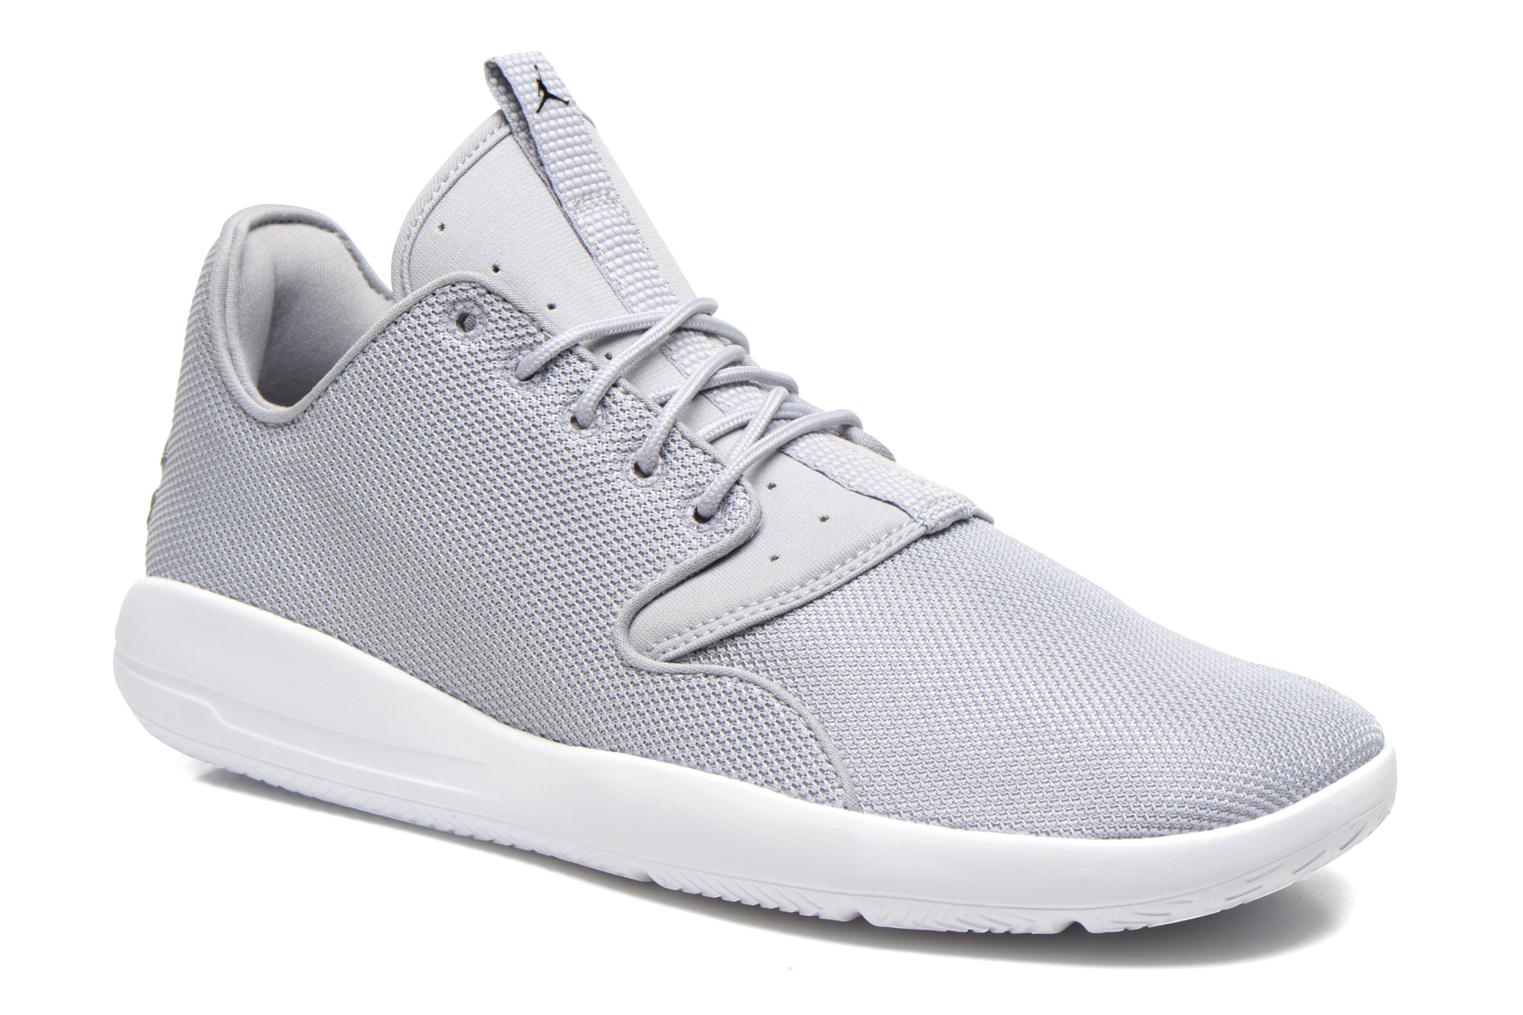 Jordan eclipse herren grau damen for Schuhschrank jordan design